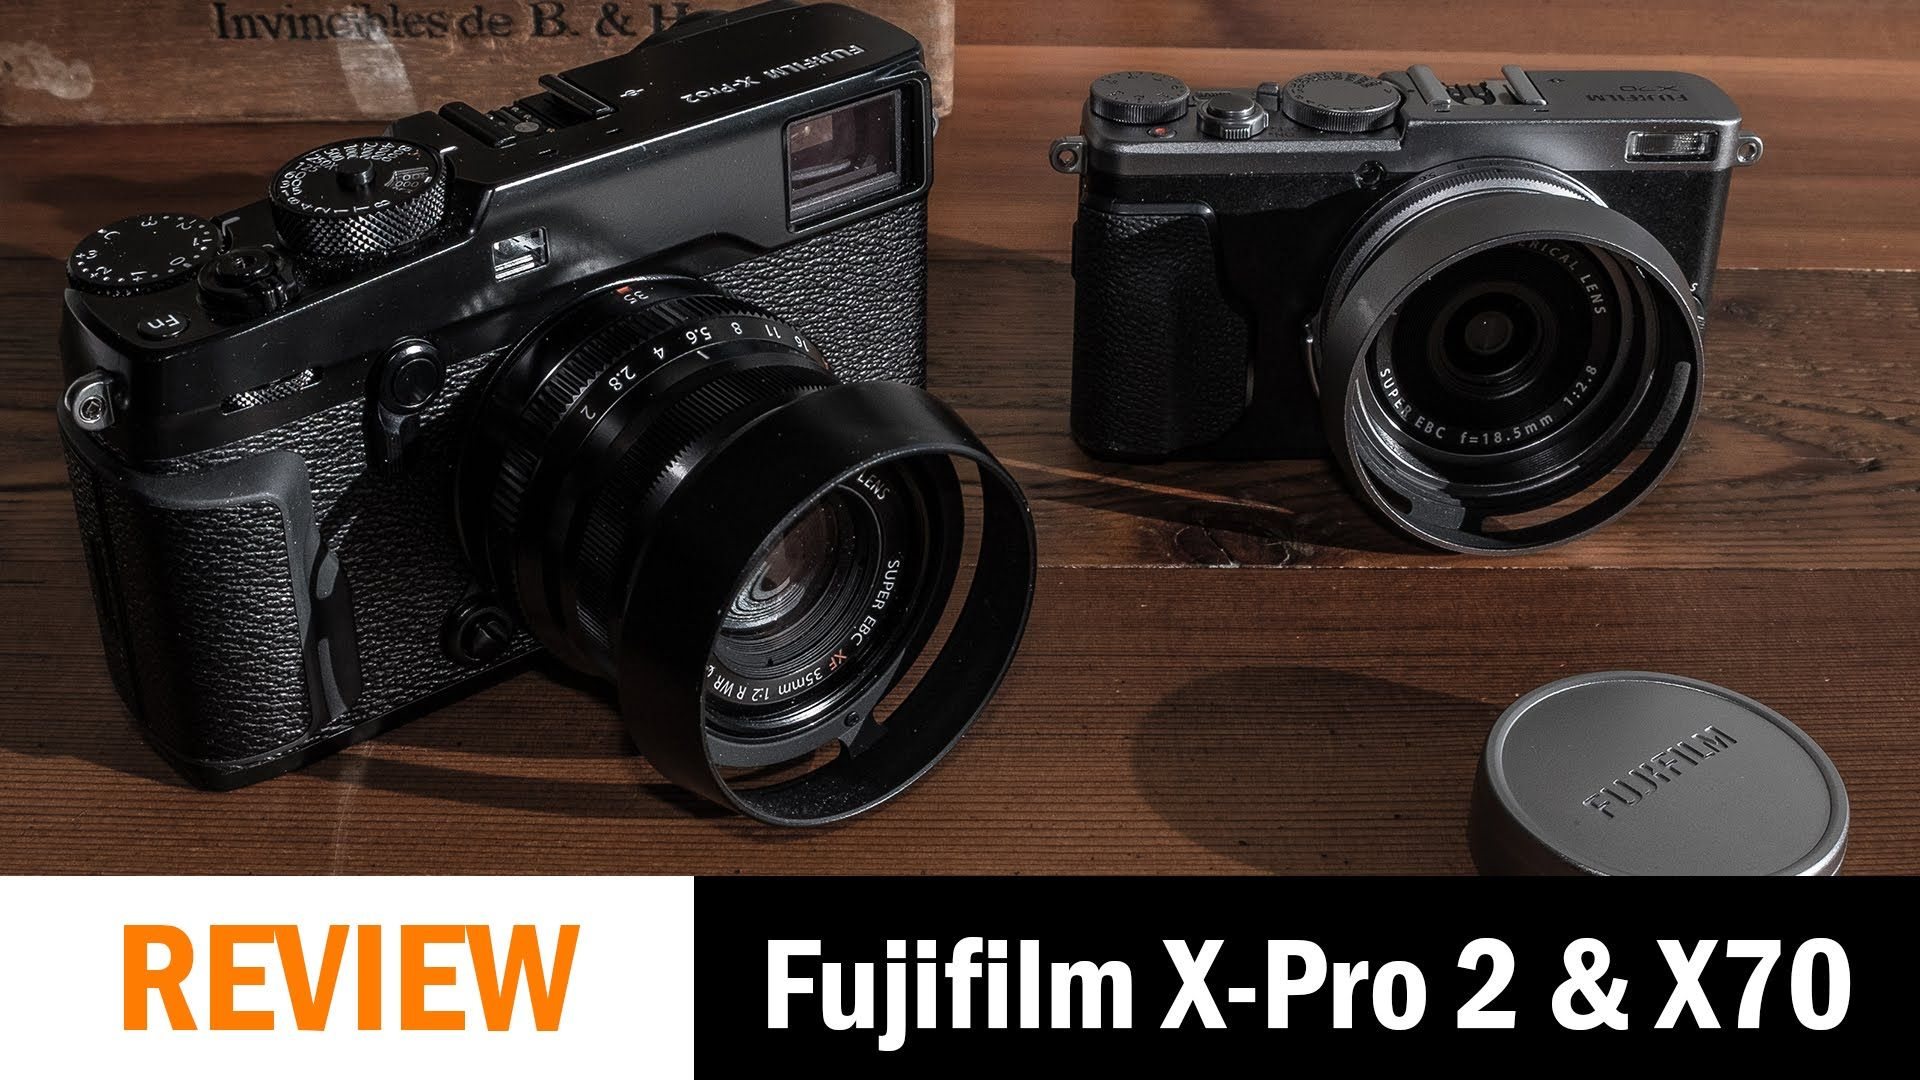 This is my midpoint review of both the X-Pro 2 and the X70